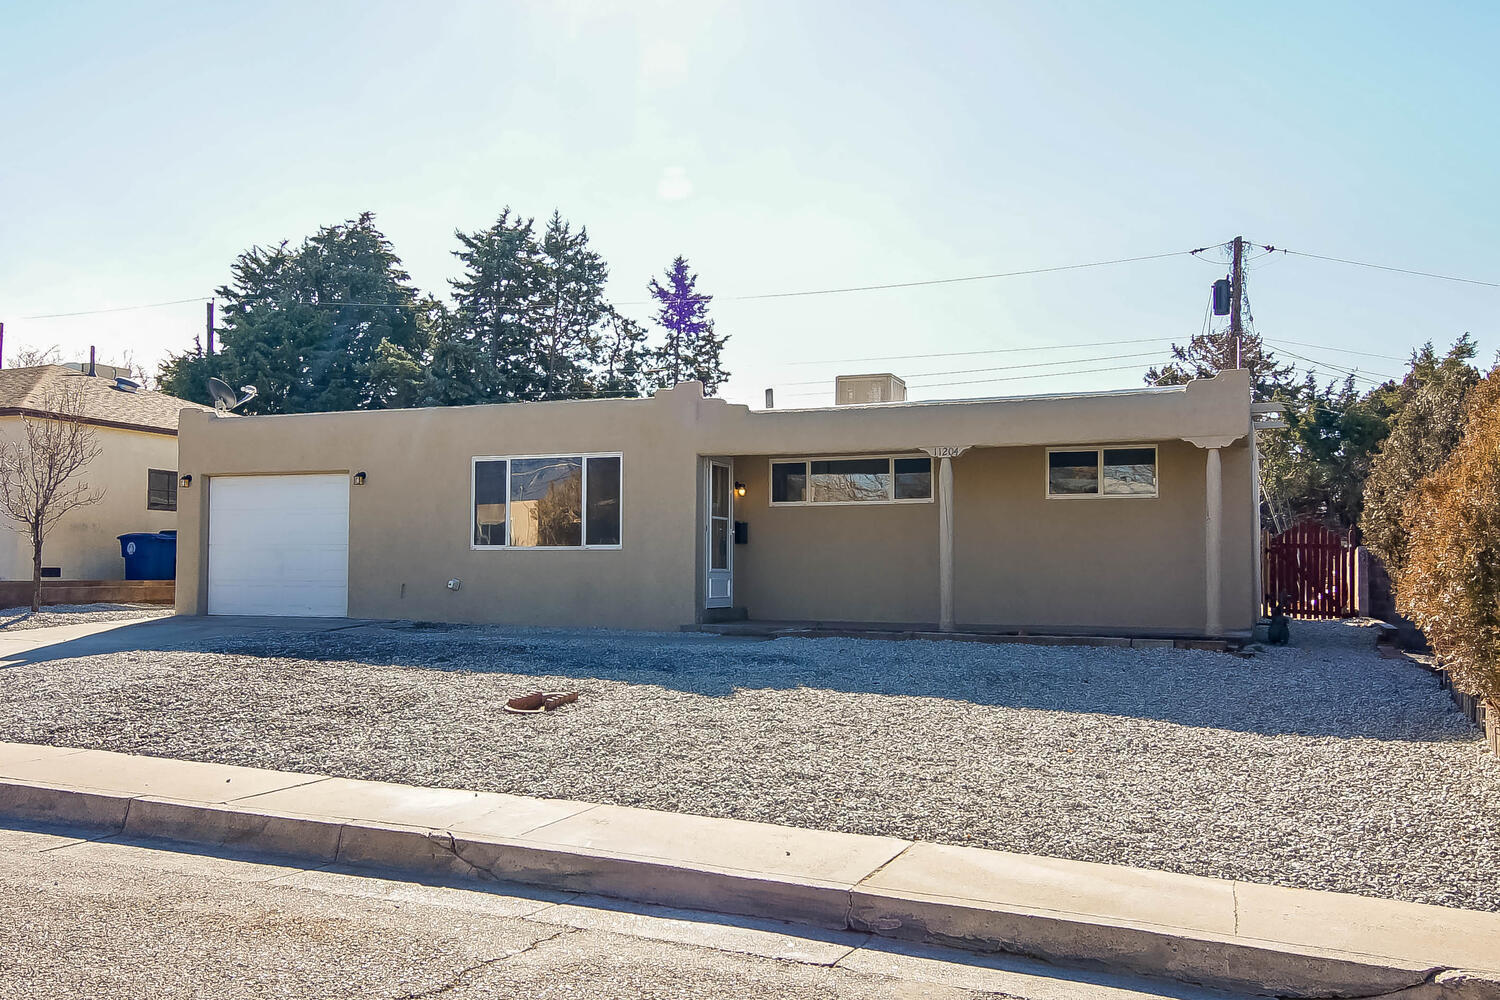 Amazing opportunity in the NE Heights! All NEW IN 2020 & 2021:  New gas furnace, new doors, new laminate flooring, new stainless steel kitchen appliances, new kitchen cabinets, new granite counter tops and new tile & vanities in both bathrooms!  New TPO roof & hot water heater in 2018.  Transferable roof warranty. Enjoy the two living areas & wood-burning fireplace.  No carpet.  Master bedroom has an en-suite 3/4 bath.  See this beautiful home today!